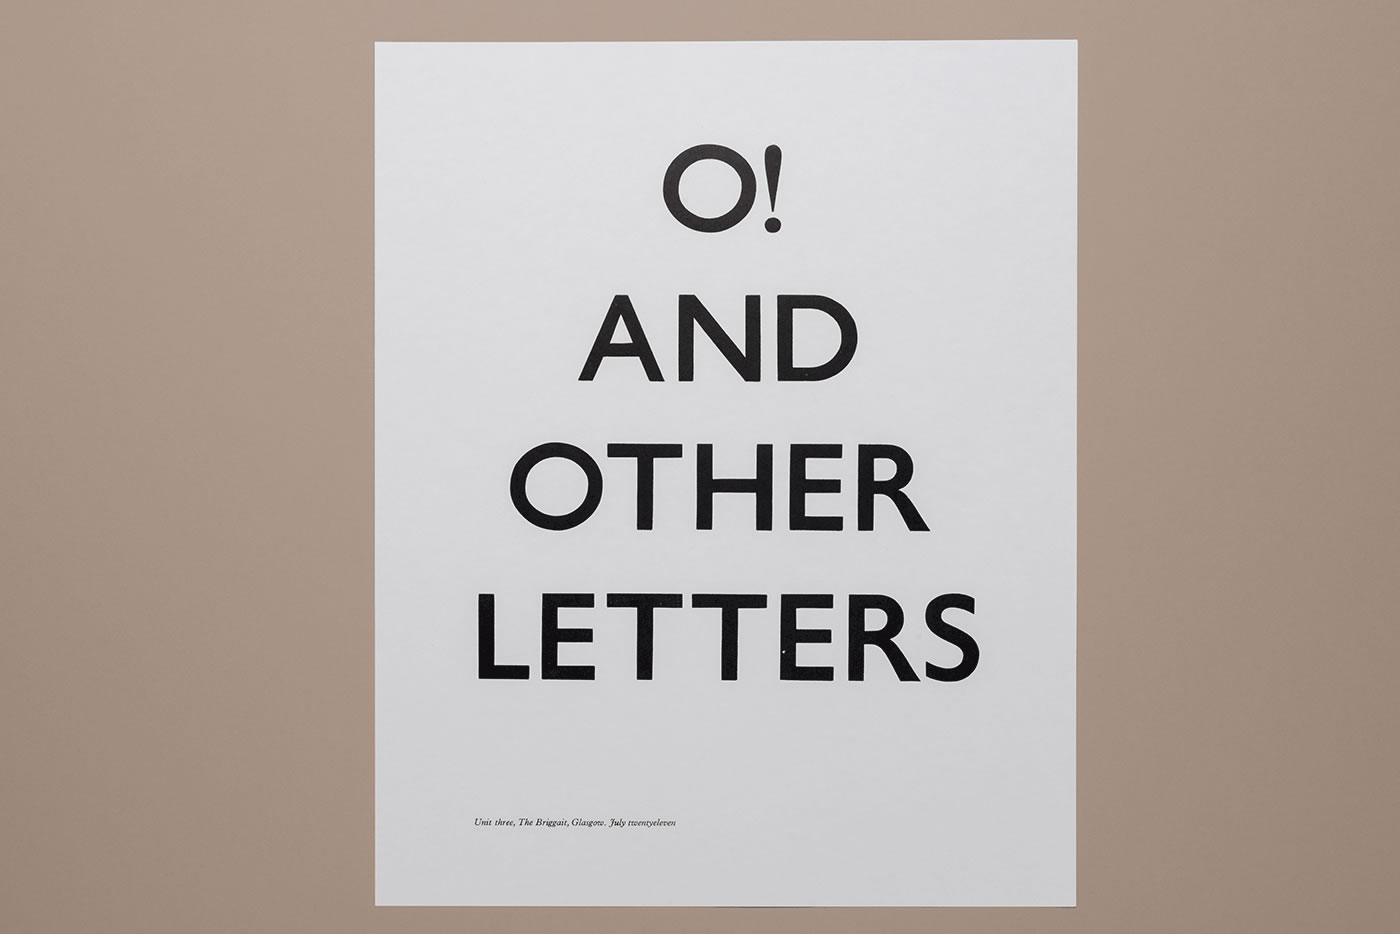 O! and other letters